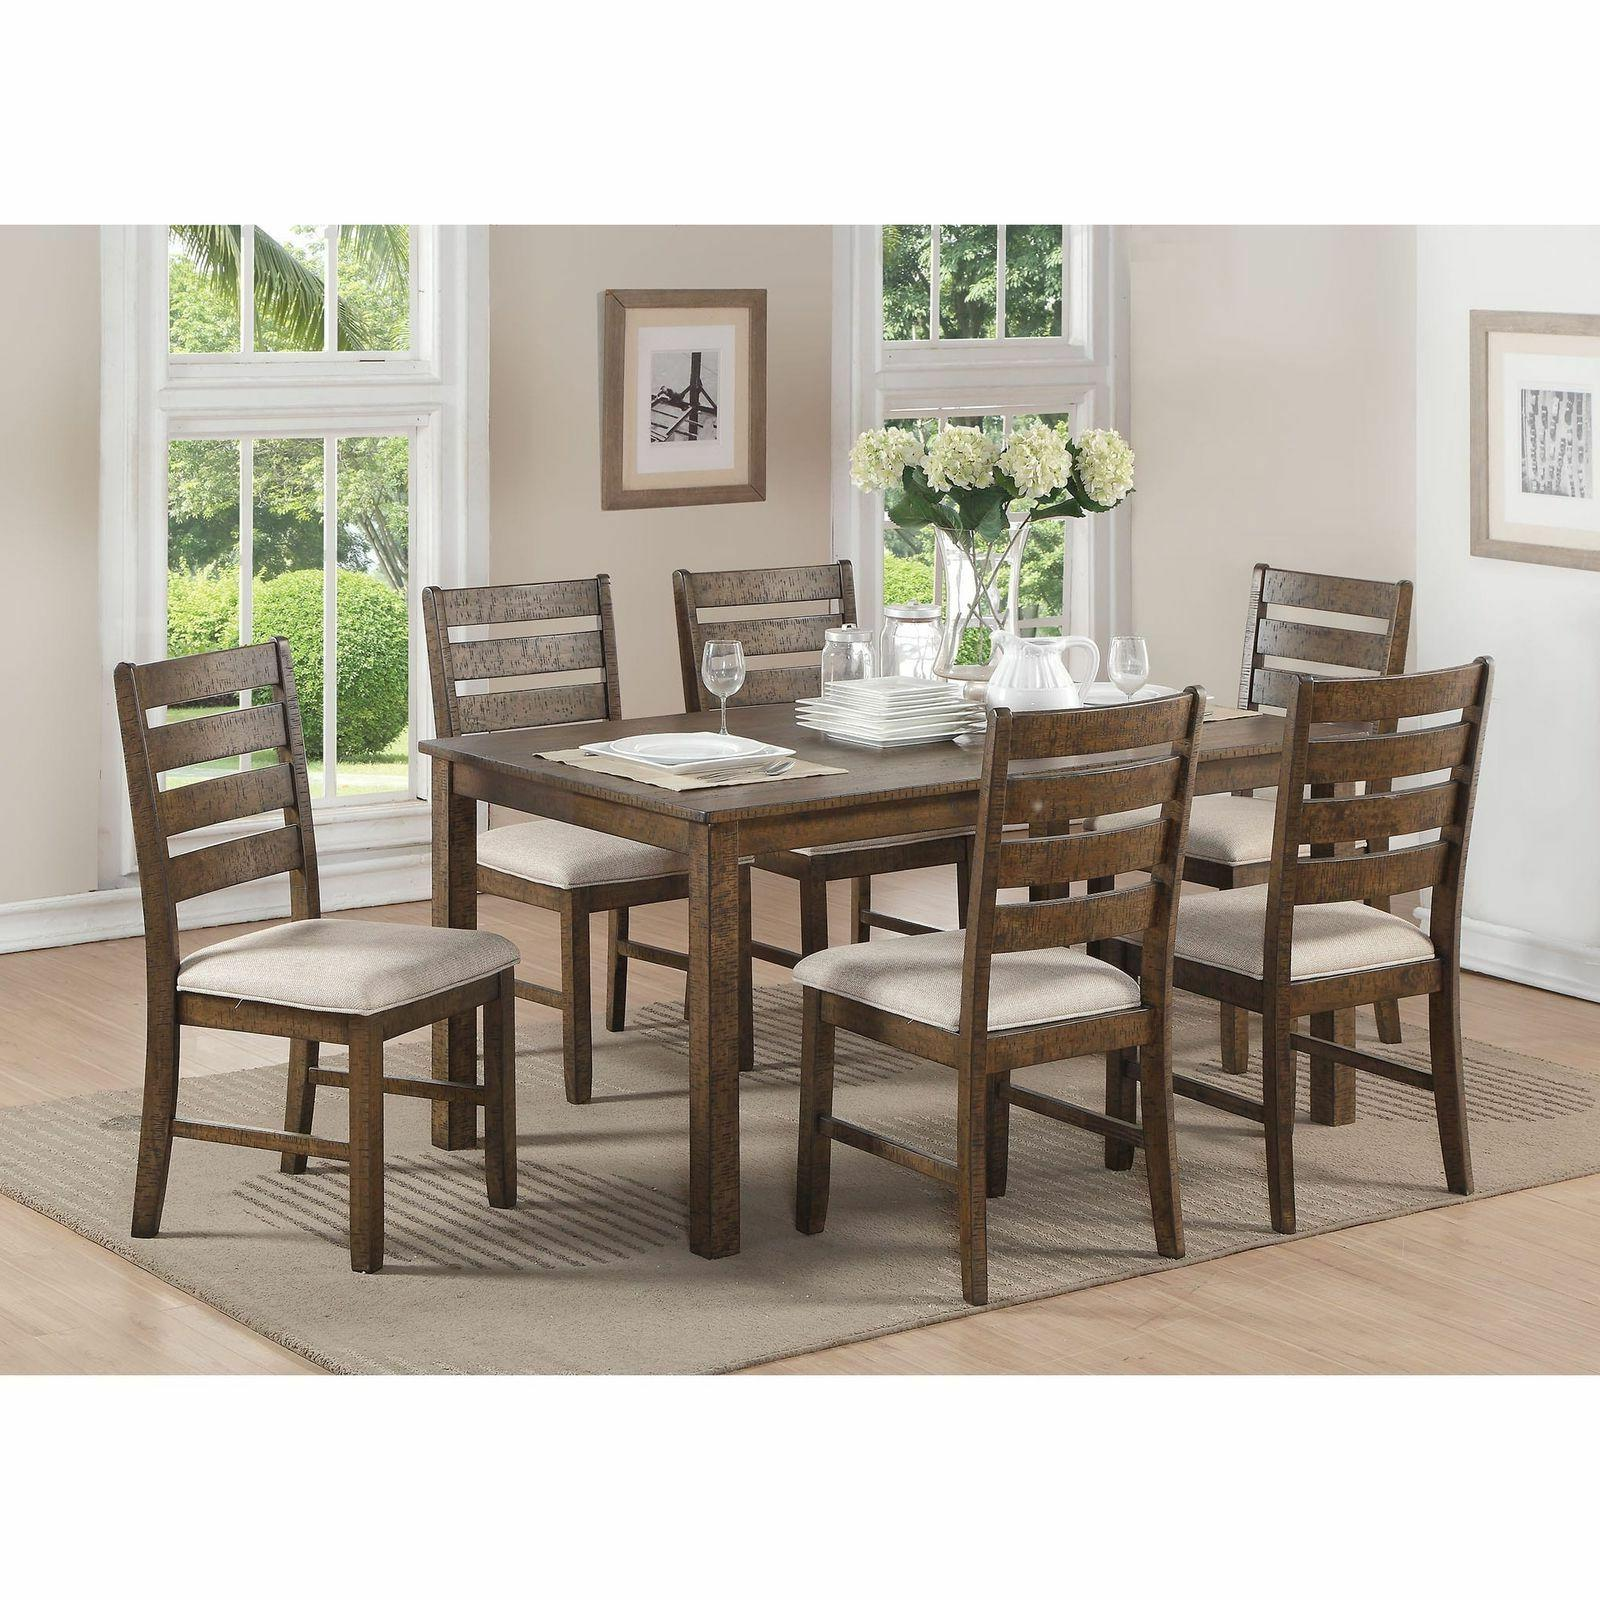 Acme Furniture Salileo Weathered Light Oak 7-piece Dining Se